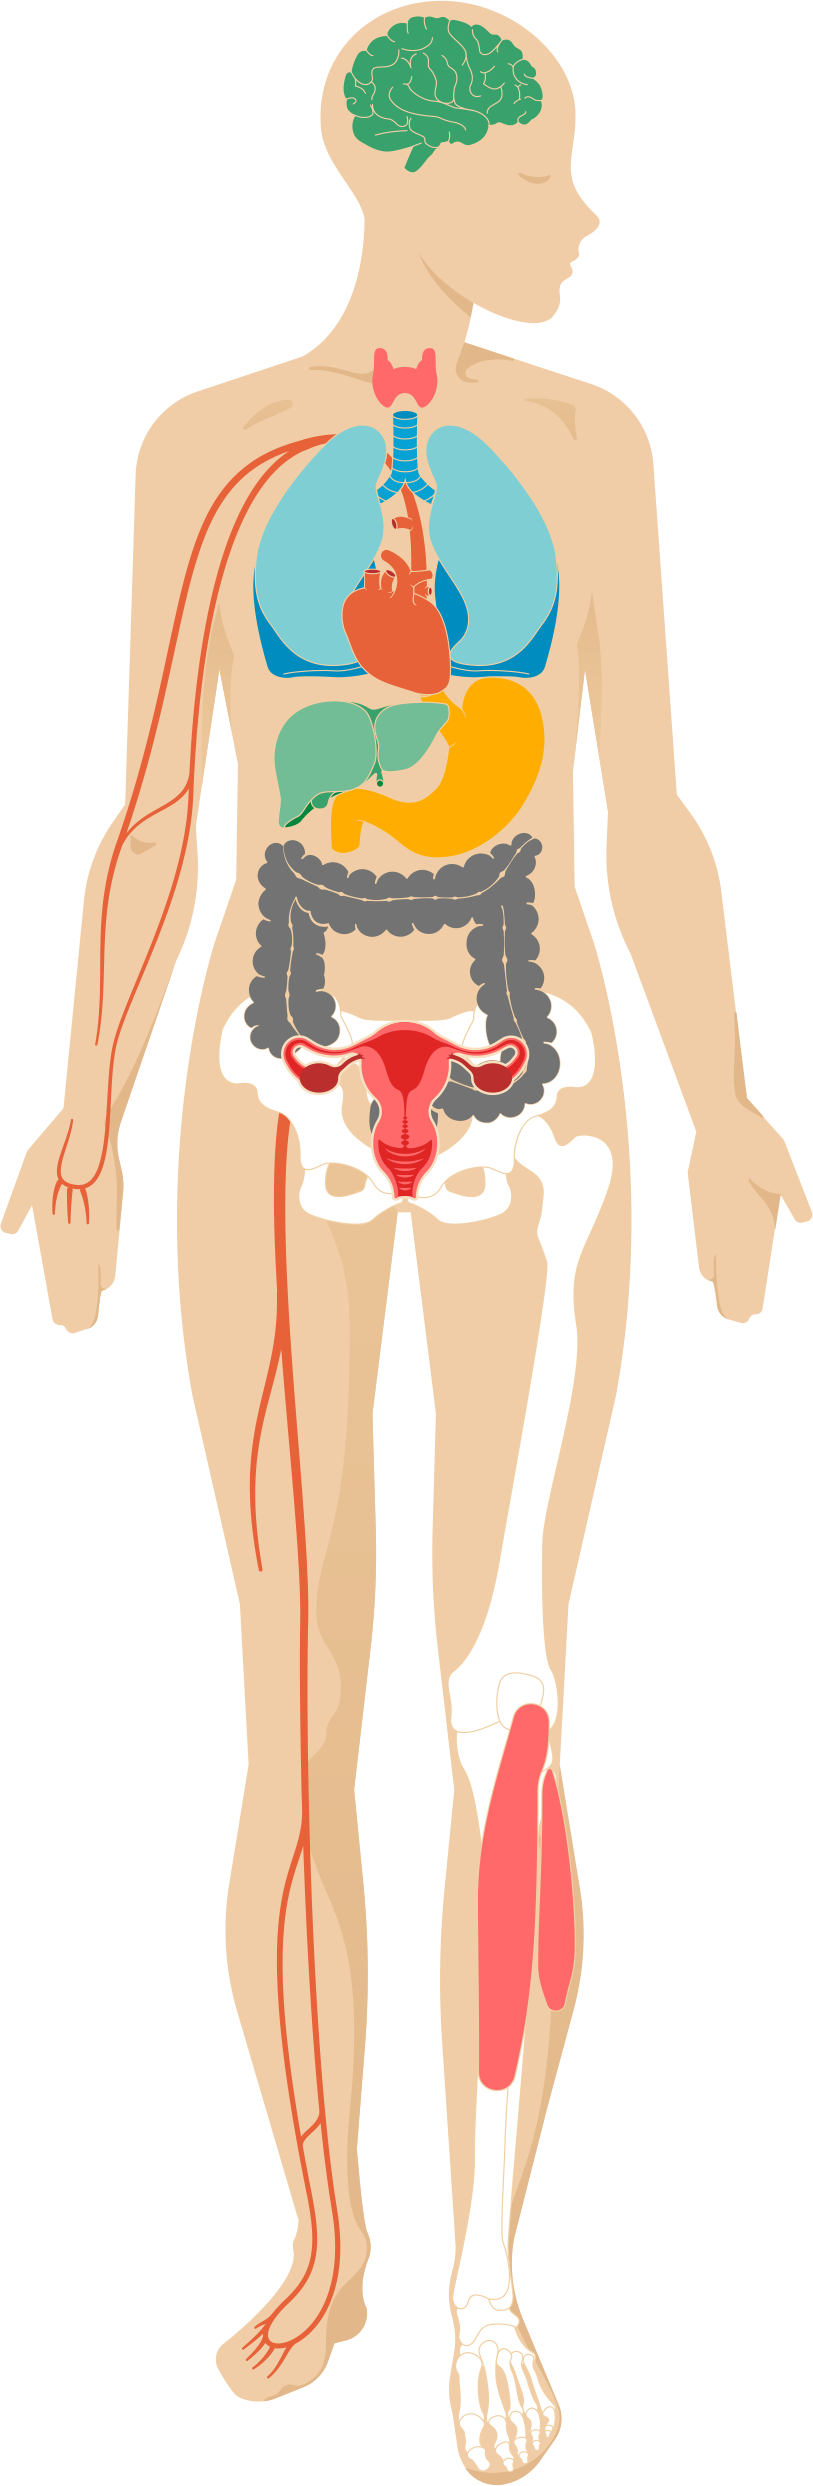 Stress clipart human. Illustration of the body